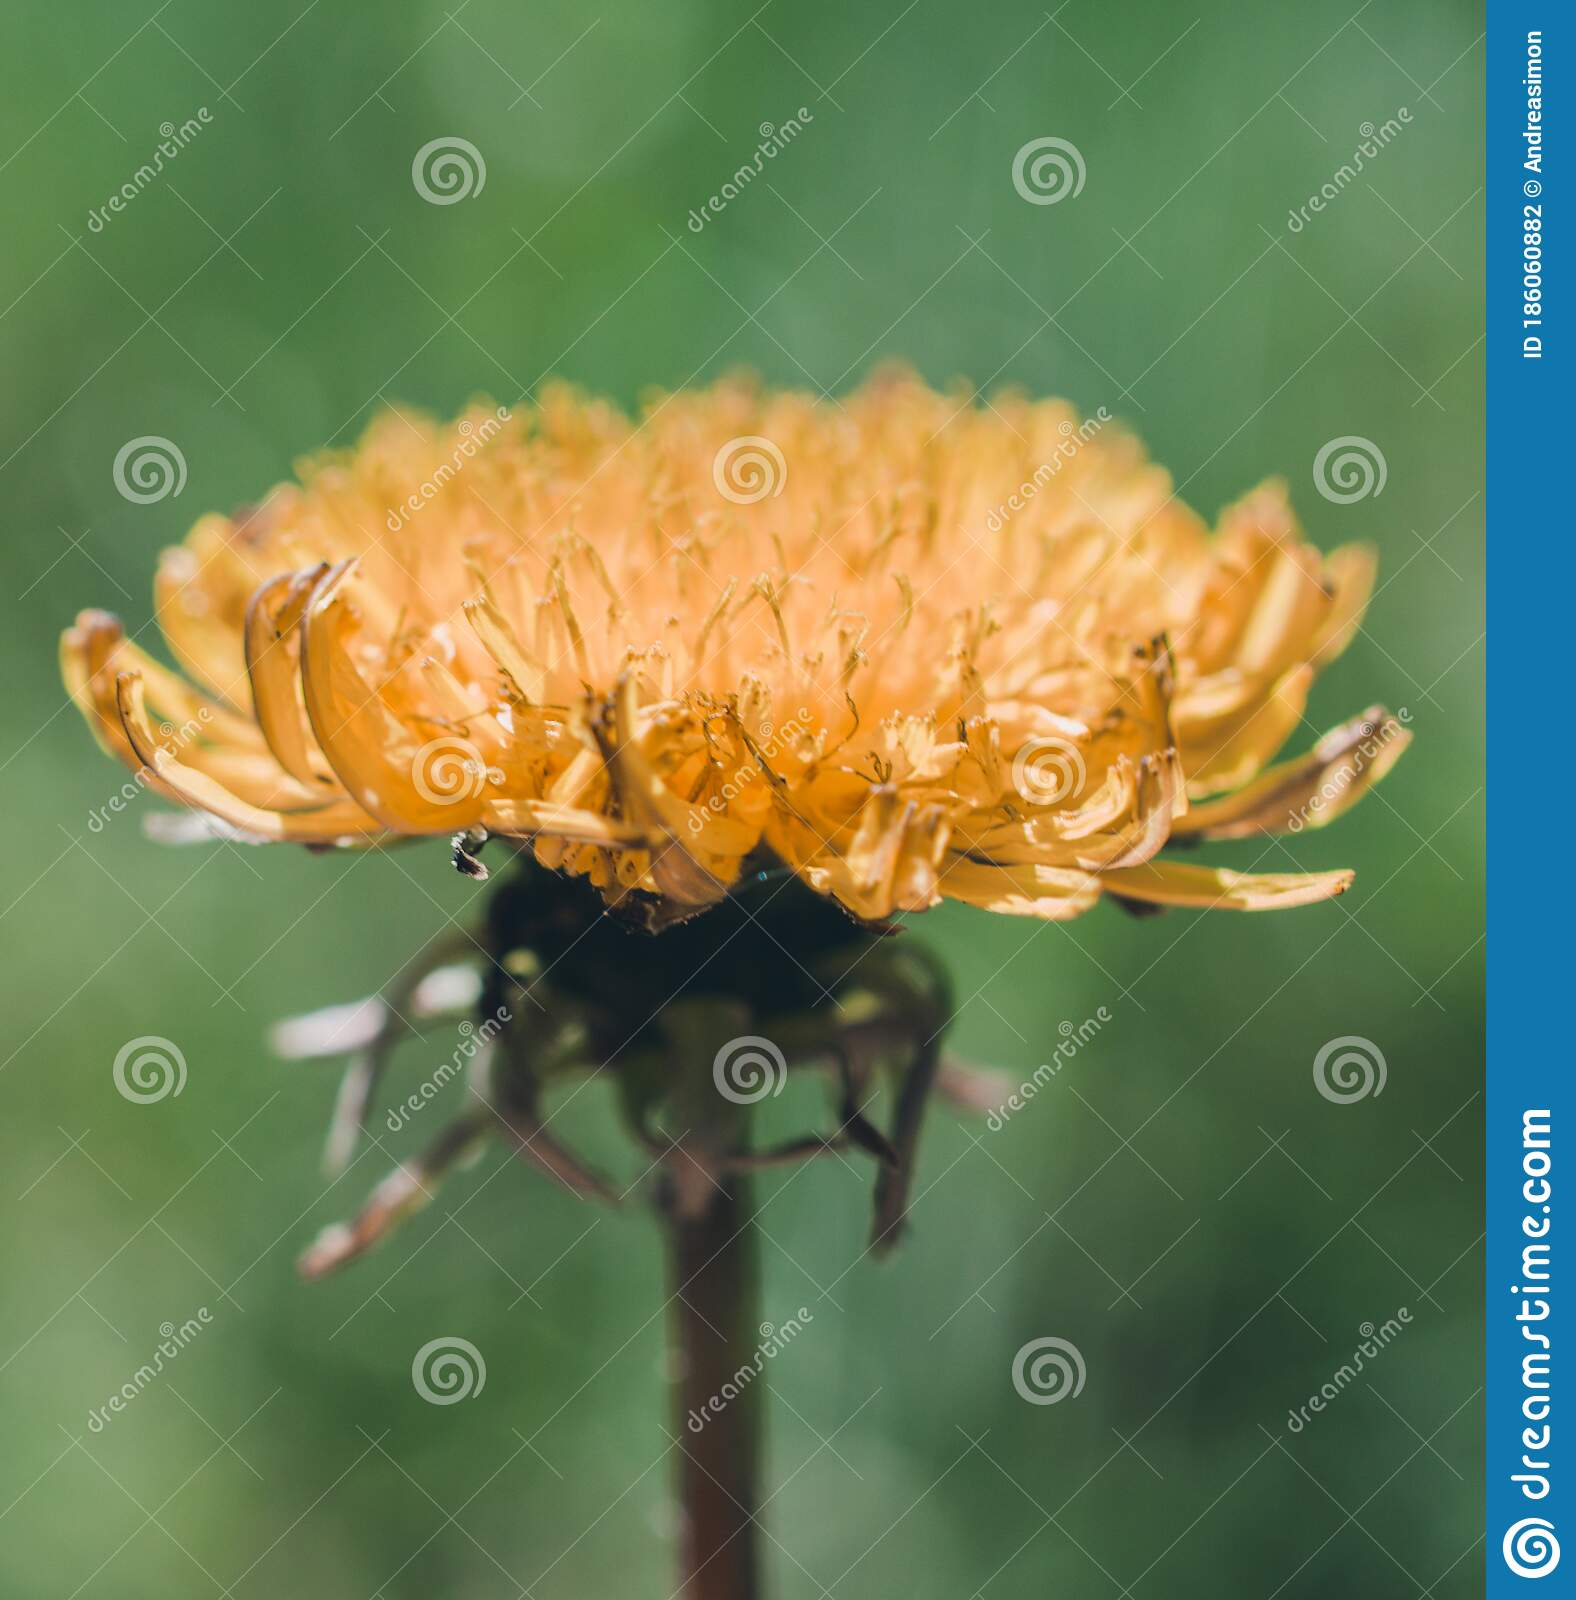 Dandelion Life Cycle Stock Photo Image Of Taraxacum